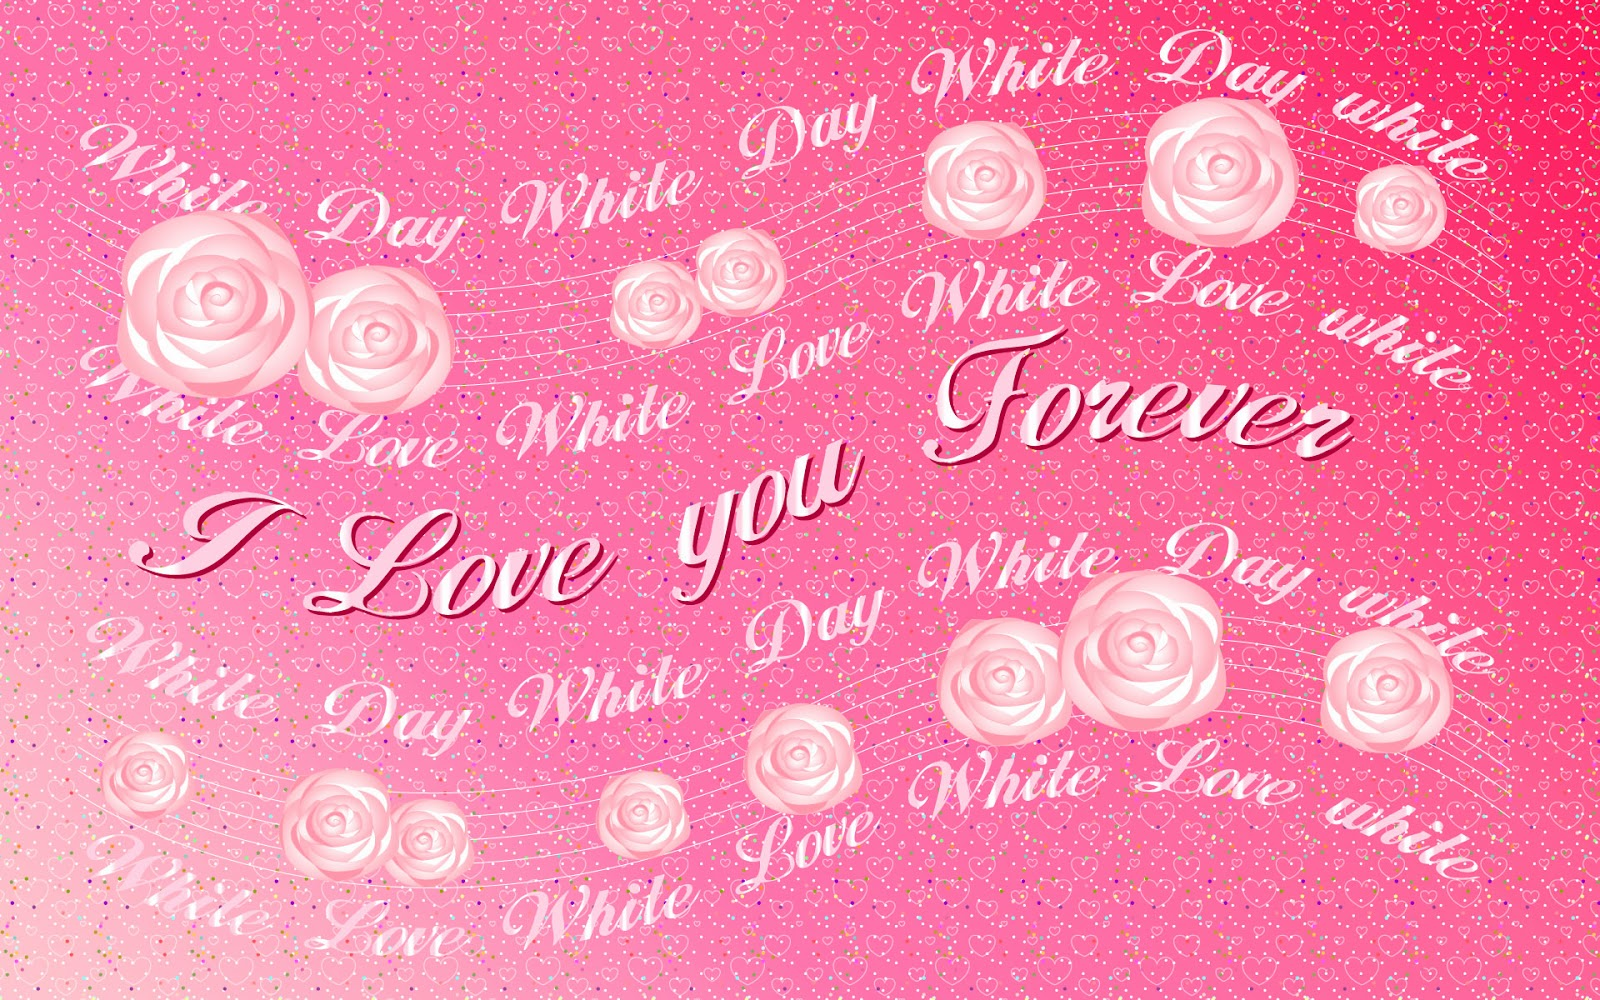 I_love_you_forever_image_HD_for_mobile.jpg